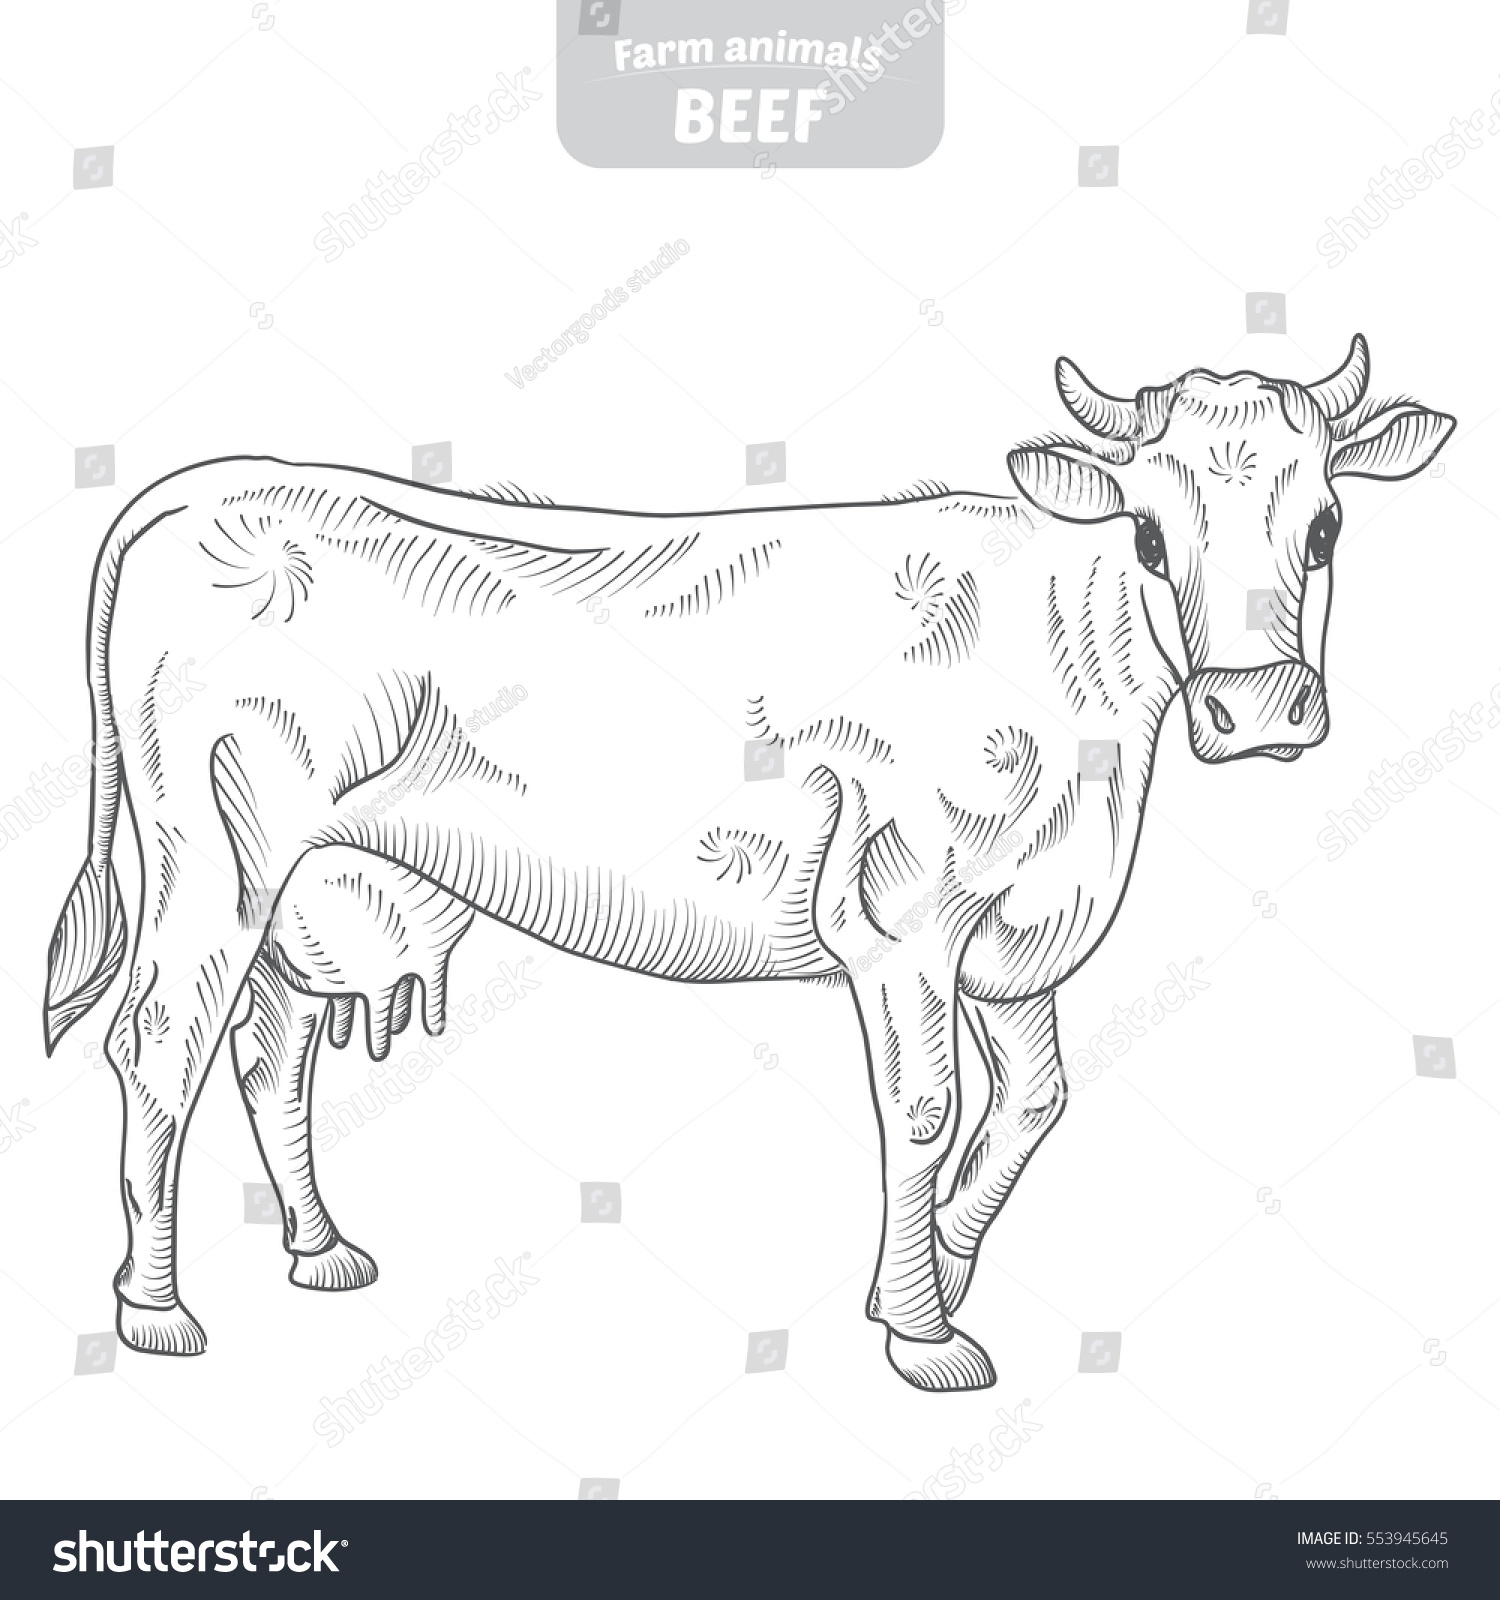 Cow And Farm In Graphic Style From Hand Drawing Image